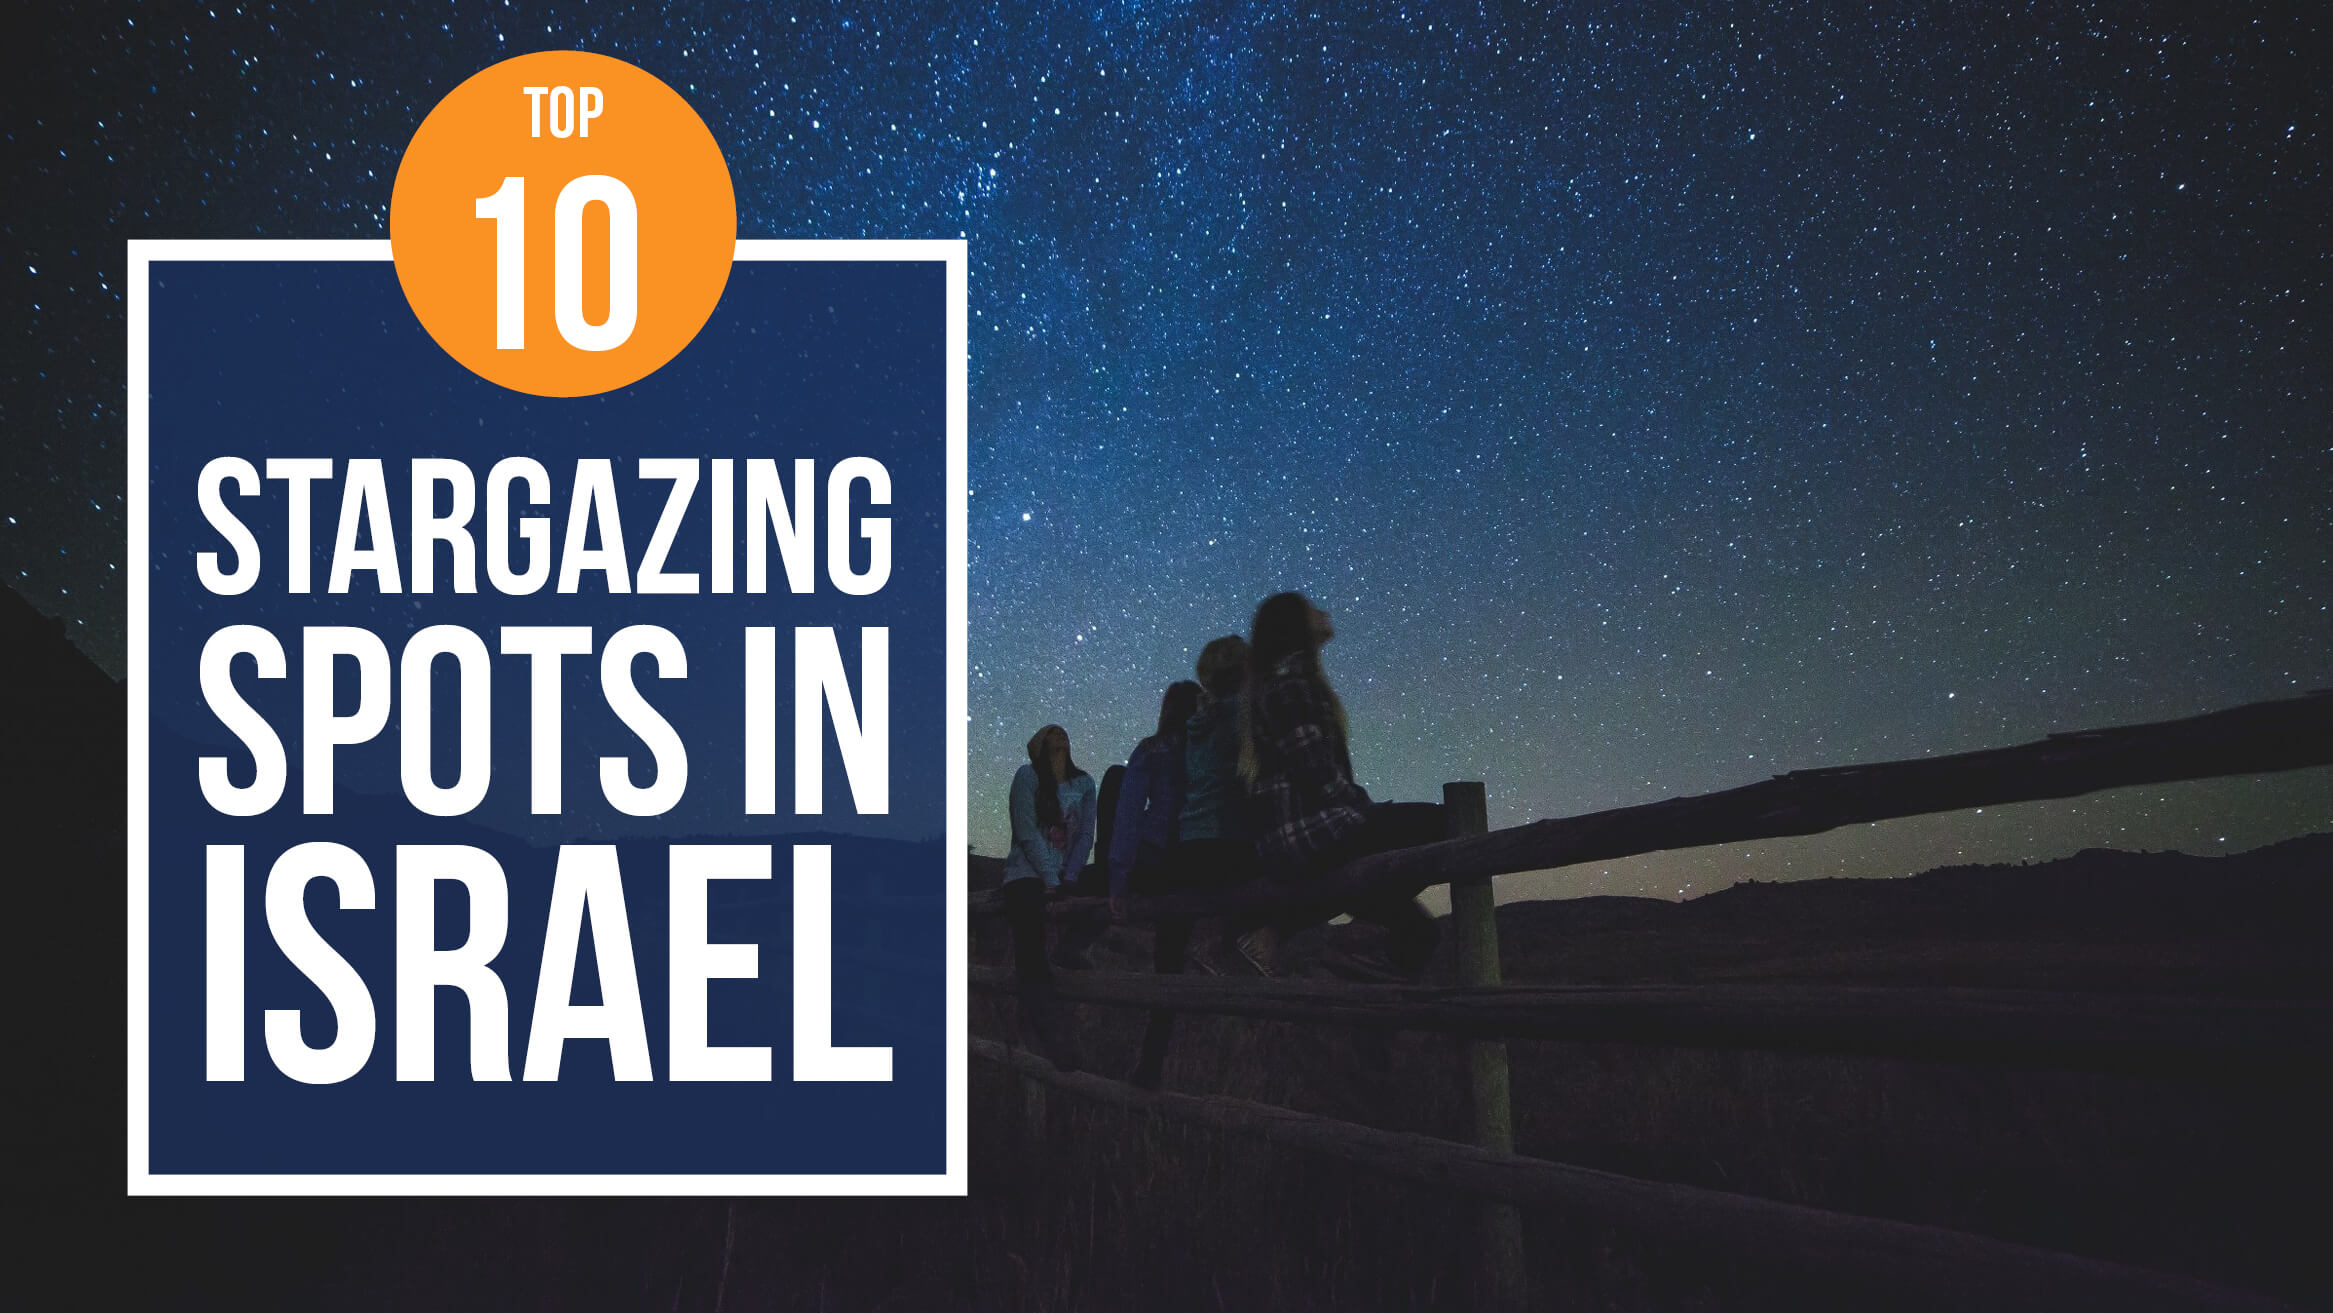 Top 10 Stargazing Spots in Israel header